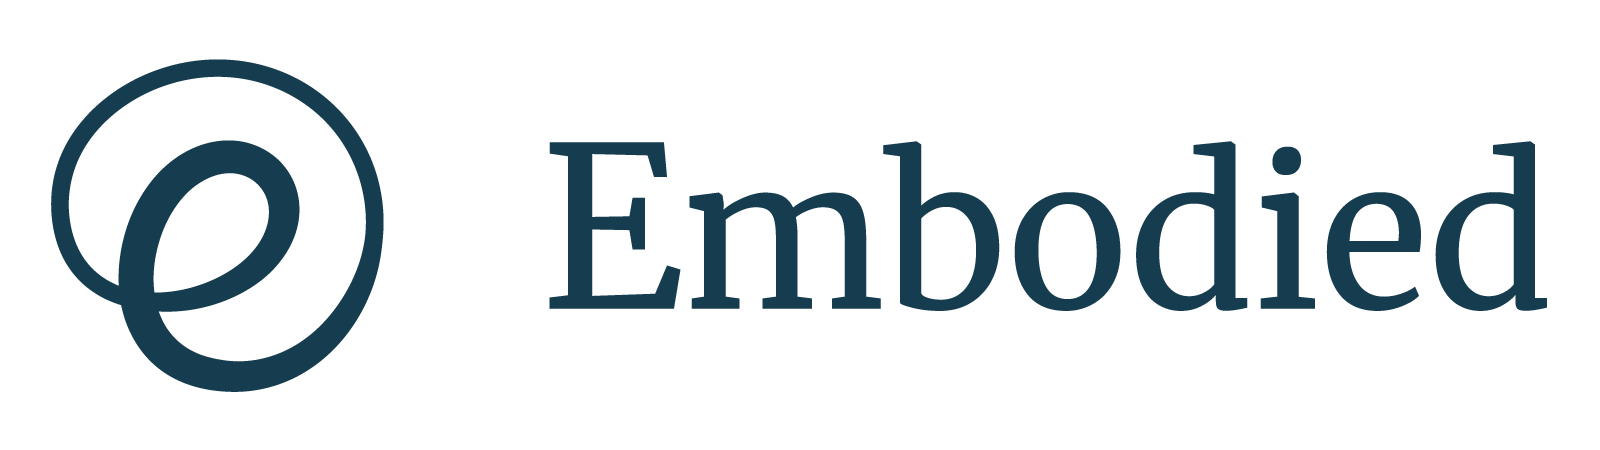 Embodied, Inc. Help Center home page